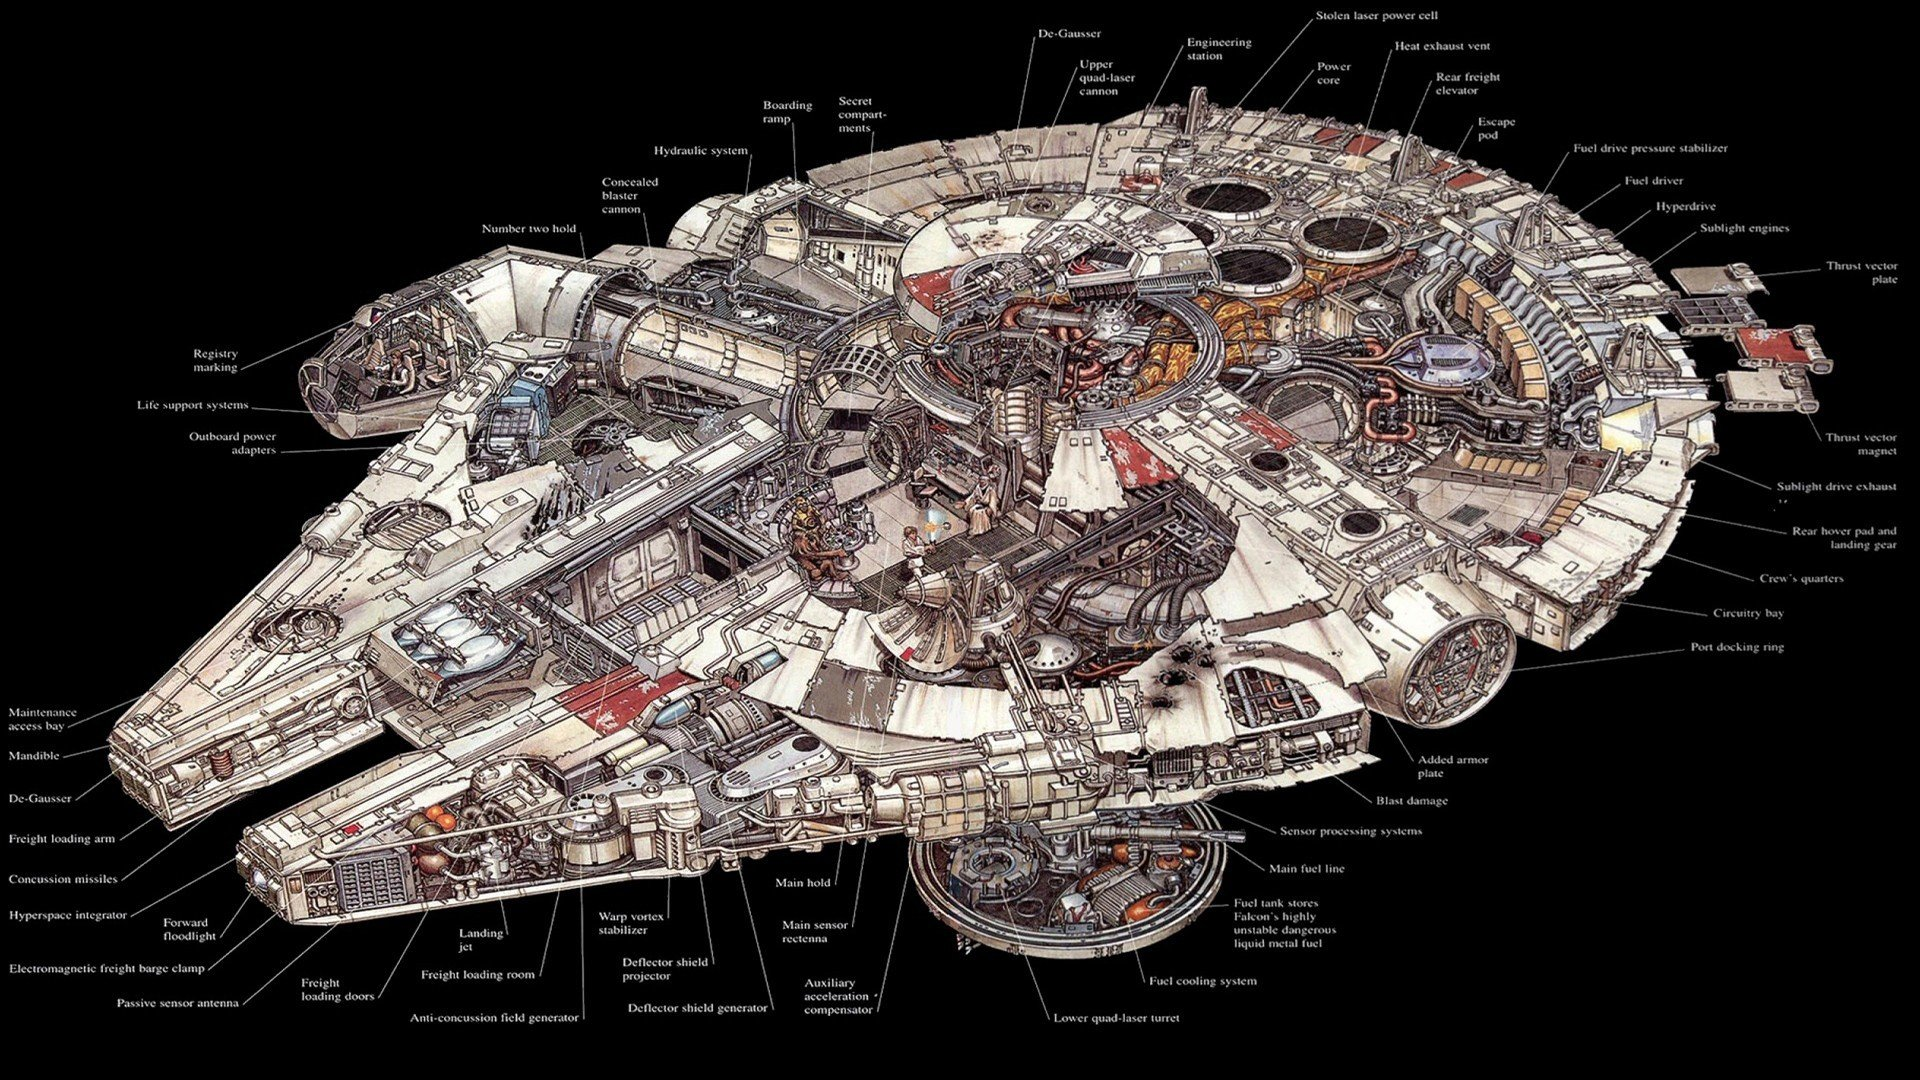 star wars millennium falcon wallpaper wallpapersafari. Black Bedroom Furniture Sets. Home Design Ideas